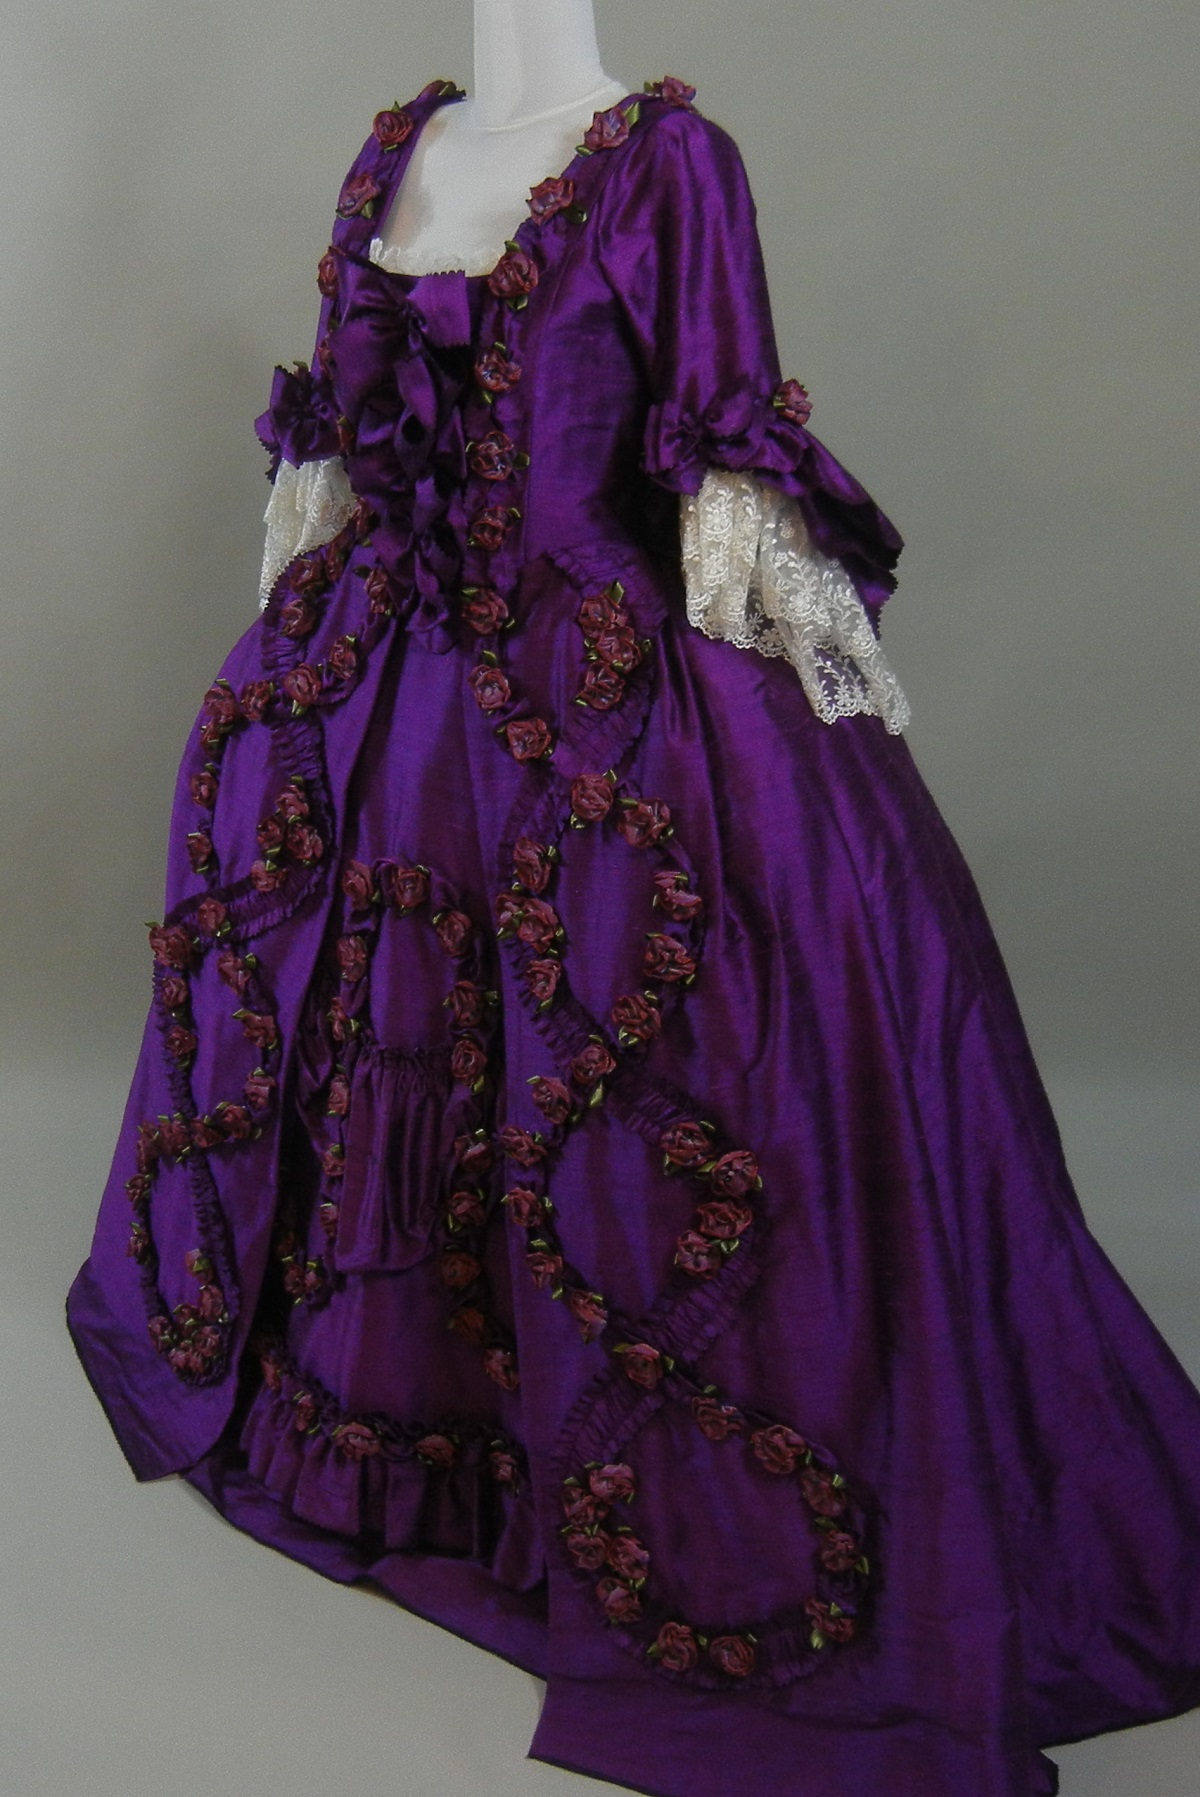 Taupe Violet & Roses Robe A La Francaise | Starlight Masquerade